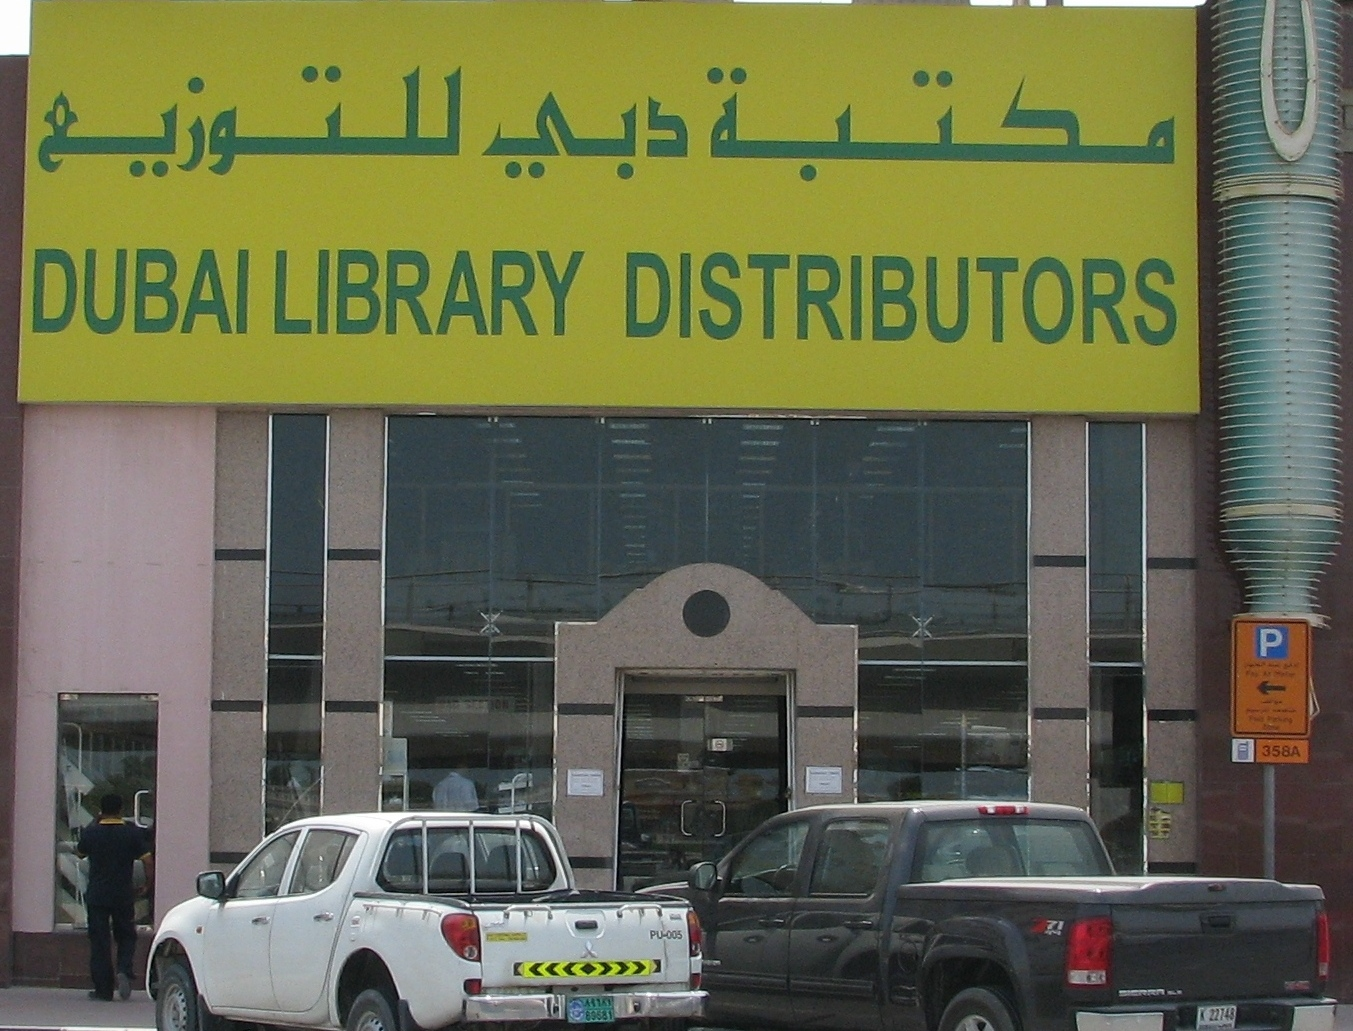 Dubai Library Distributors